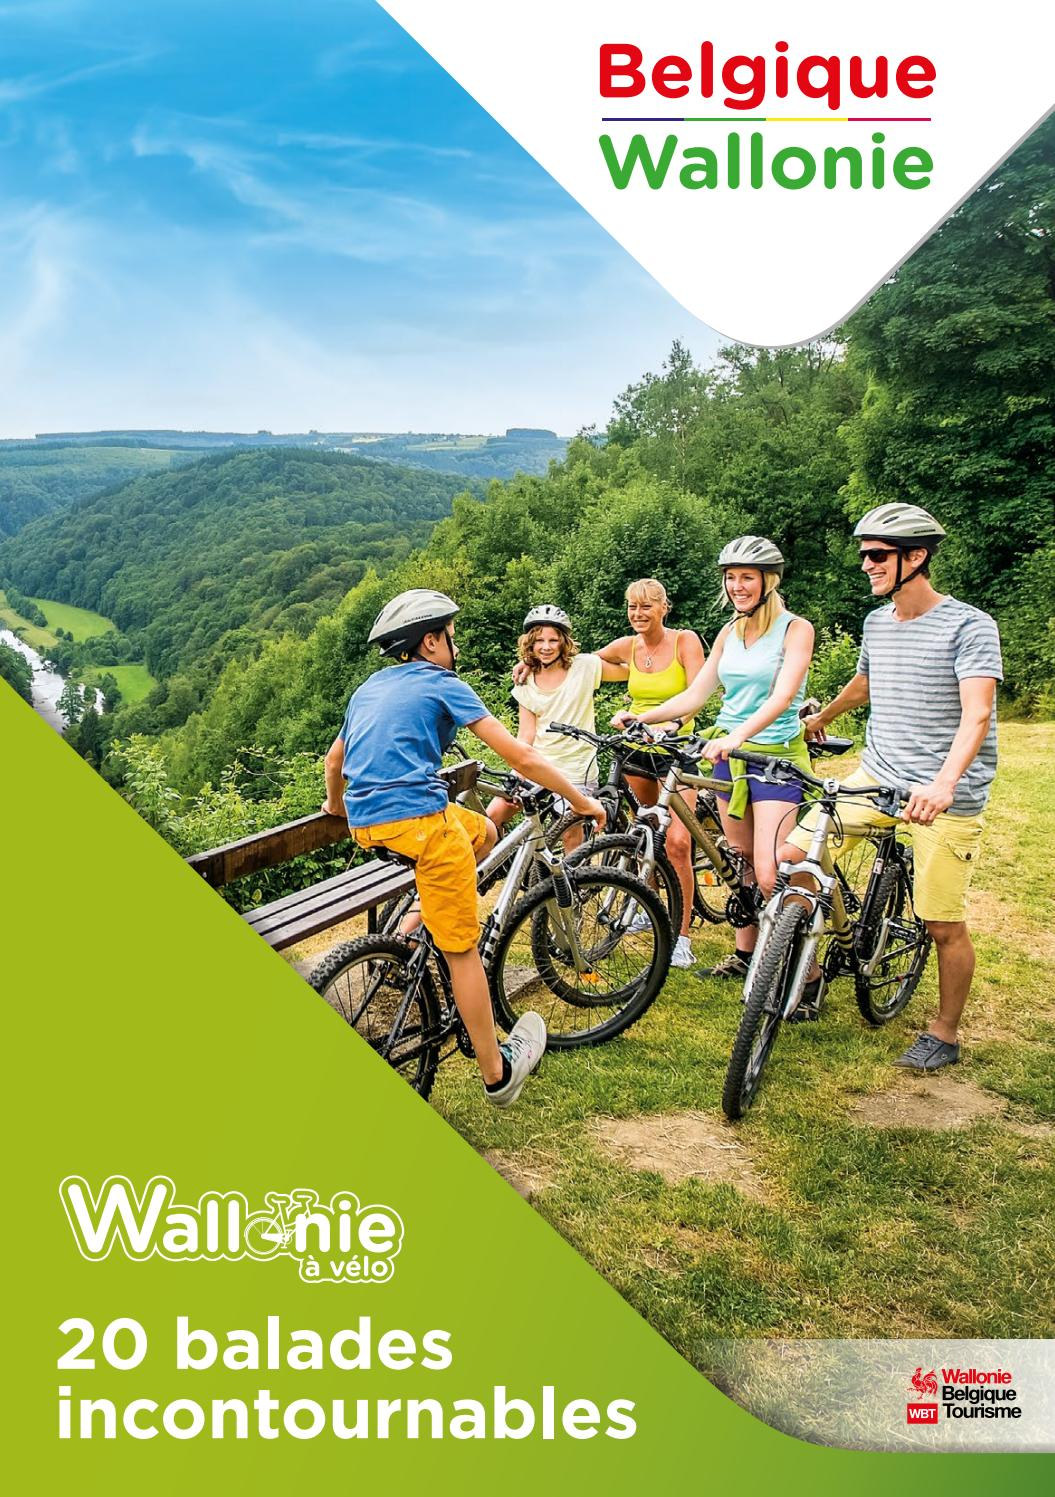 La Wallonie A Velo 20 Balades Incontournables By Visit Wallonia Issuu